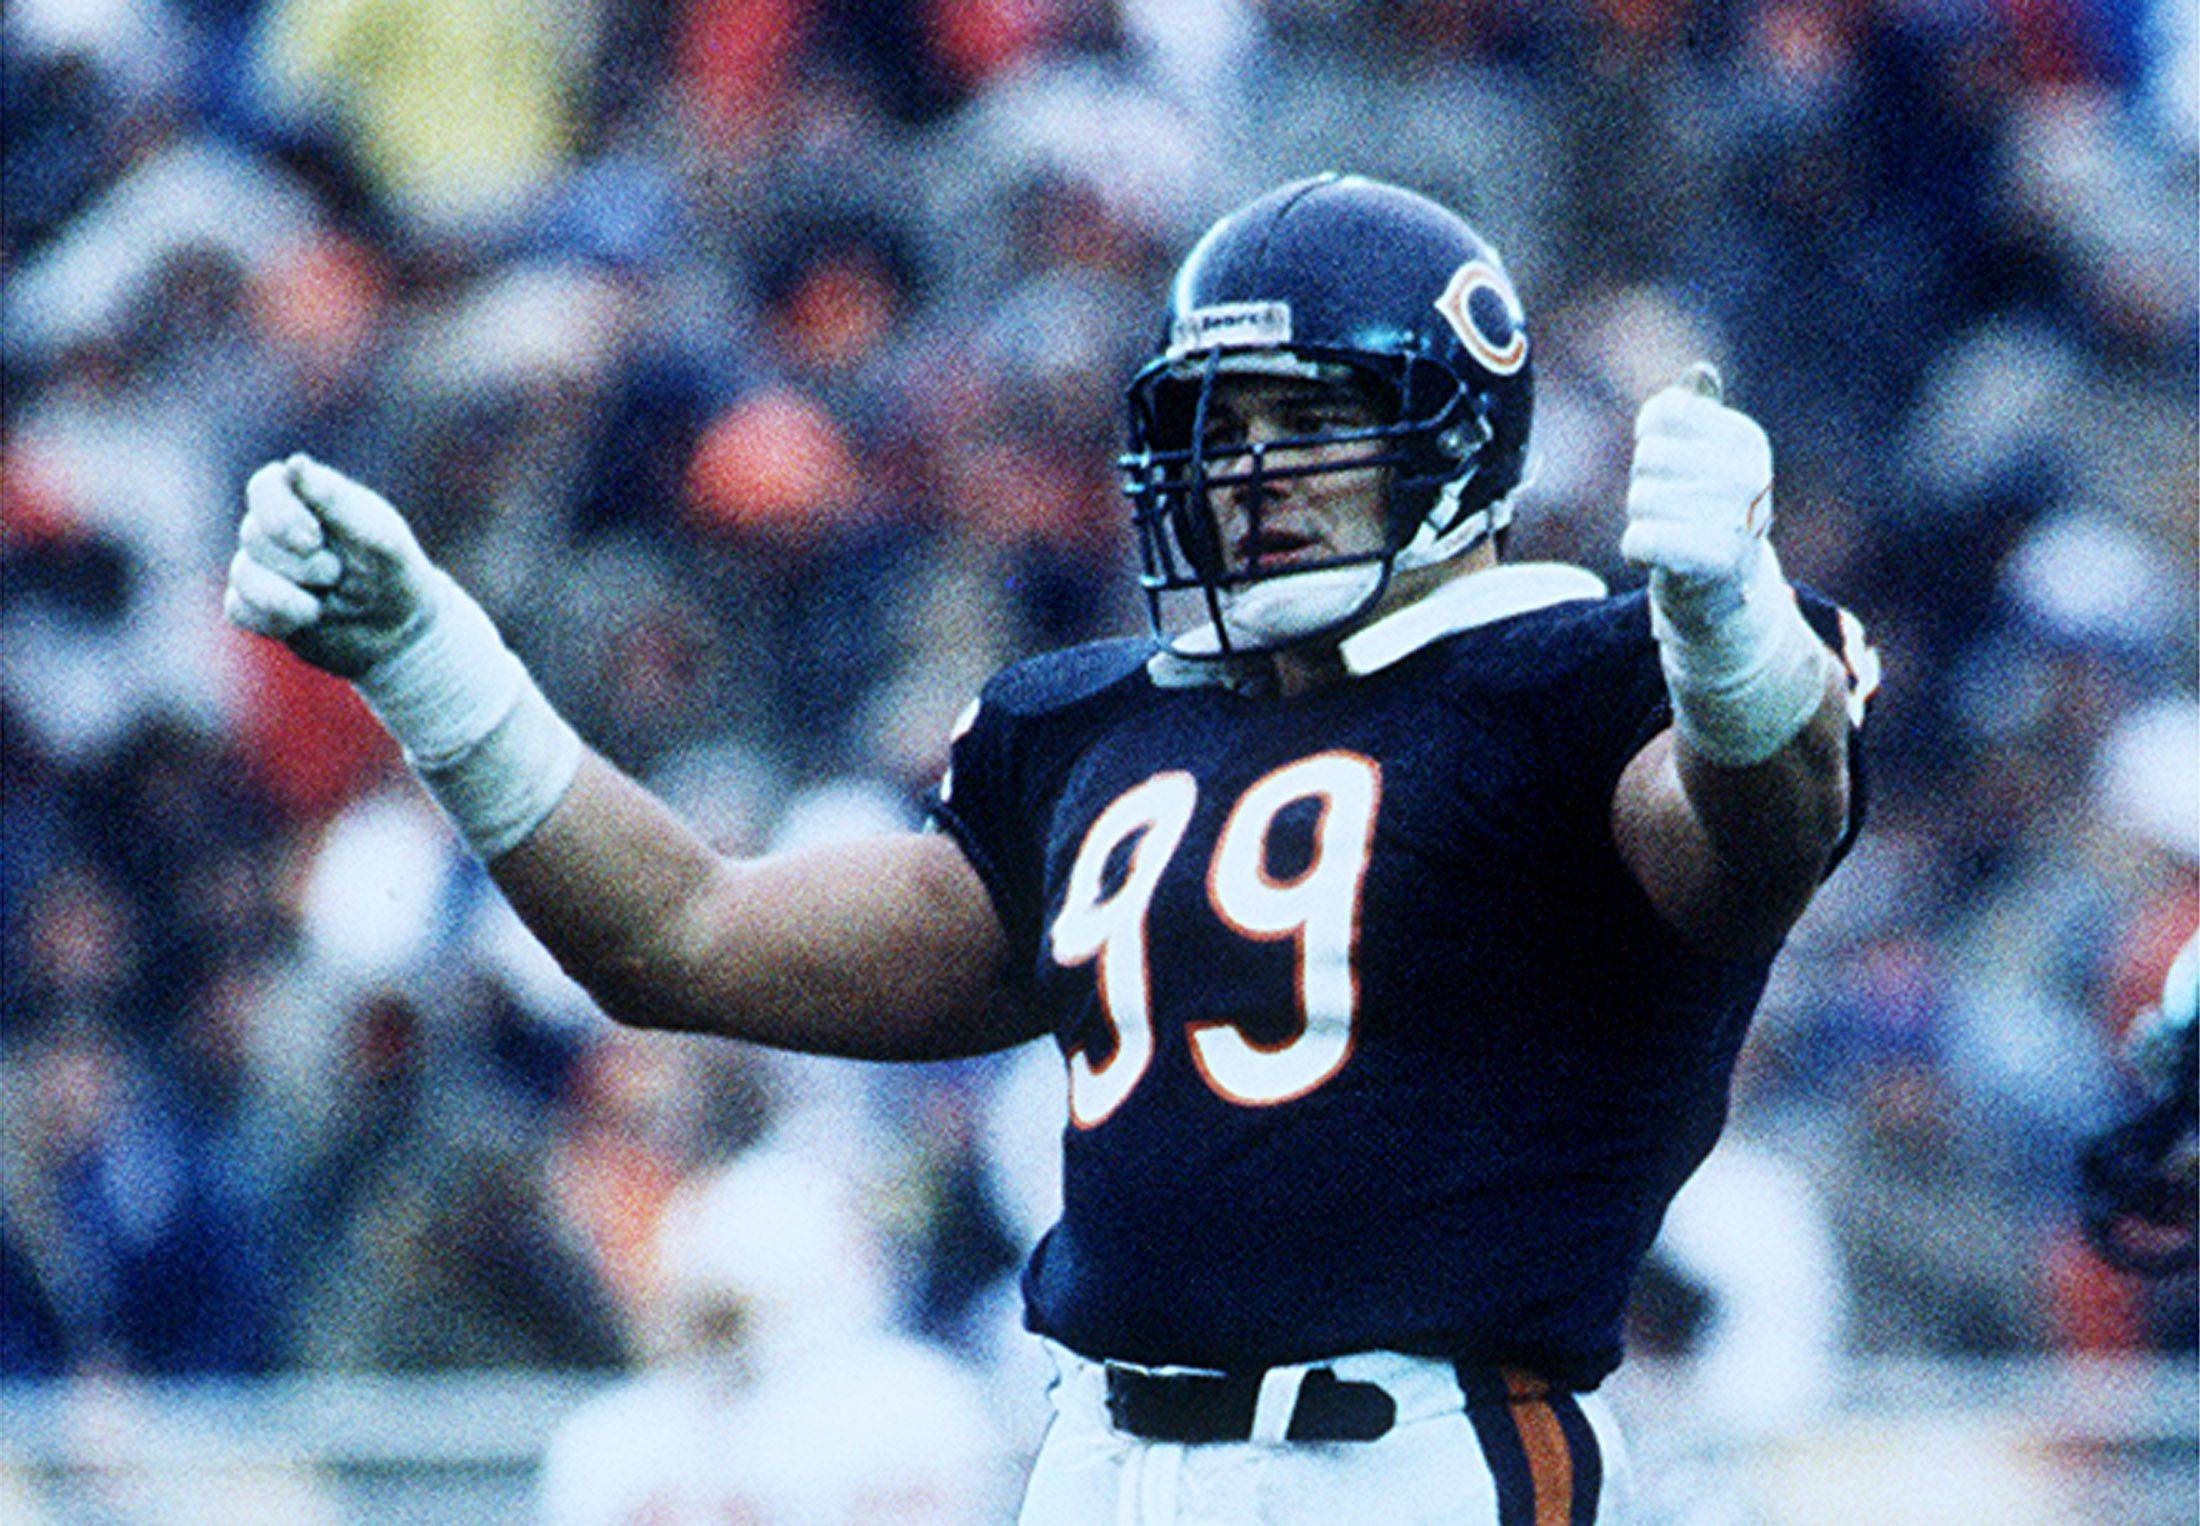 Impervious to the cold and most offensive lineman, Bears' Hall-of-Famer Dan Hampton played in short sleeves in subfreezing temperatures during a memorable Bears playoff win 25 years ago at Soldier Field.